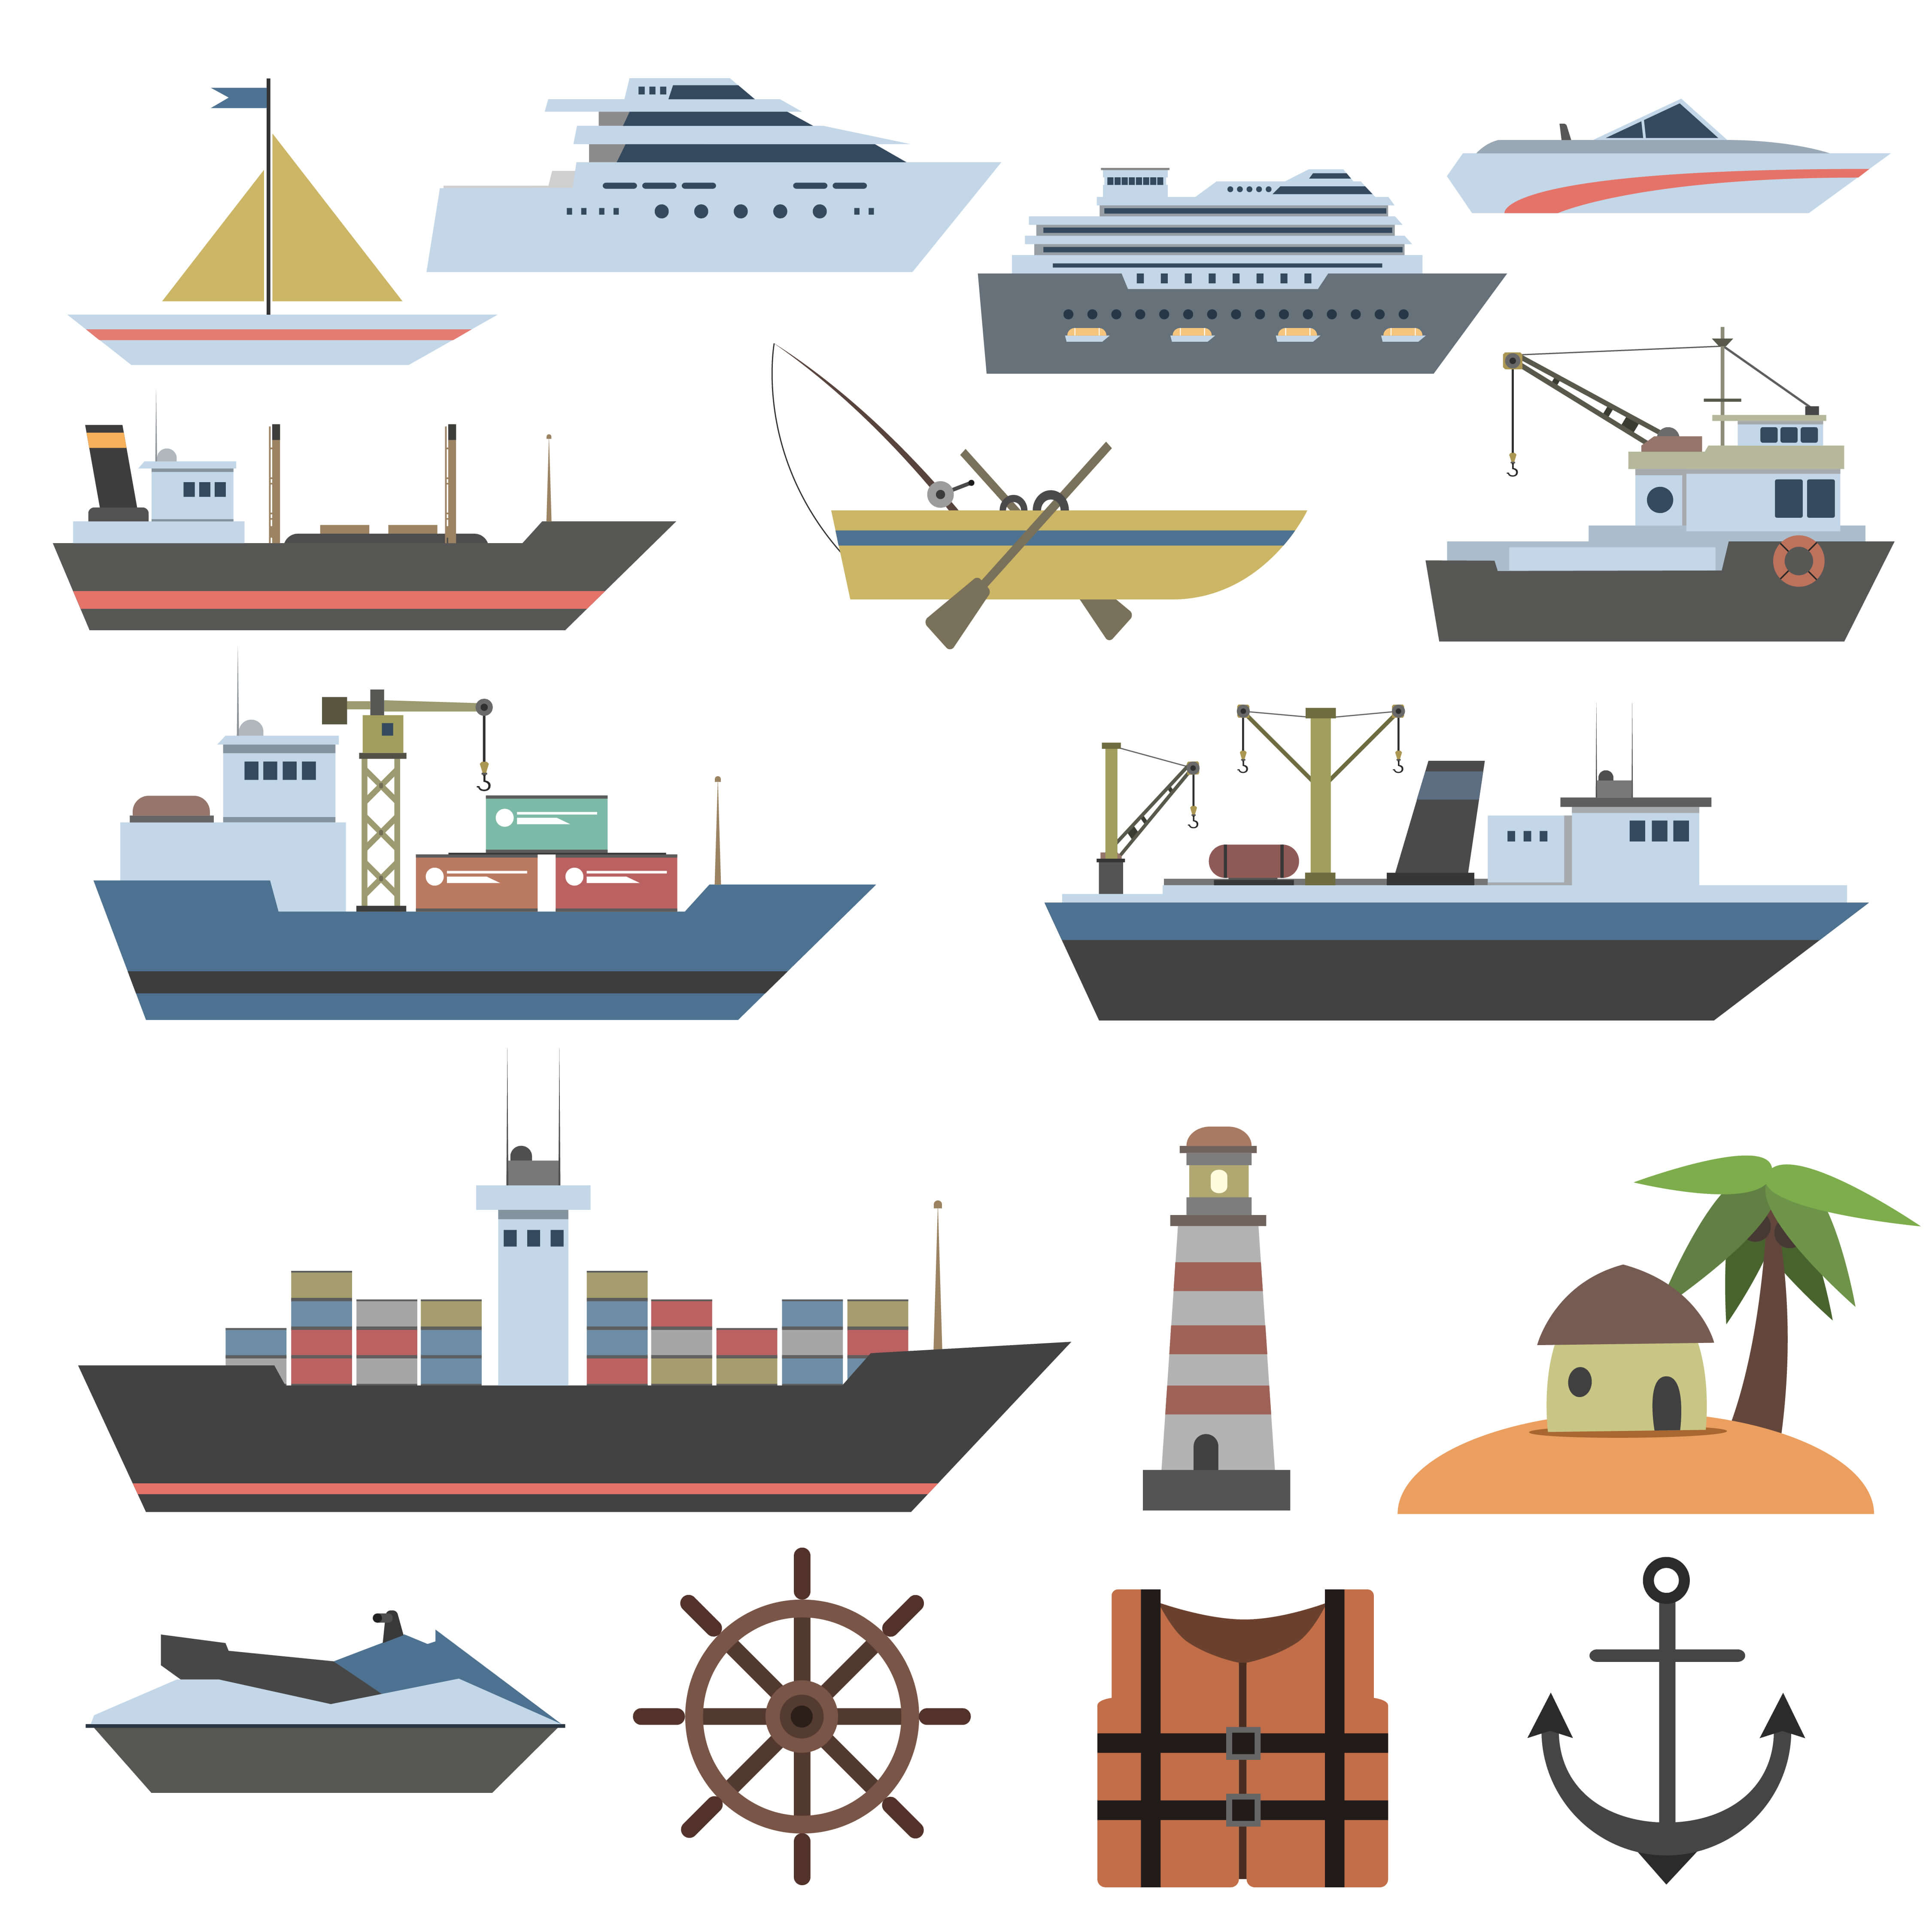 Ships and sailing vessels